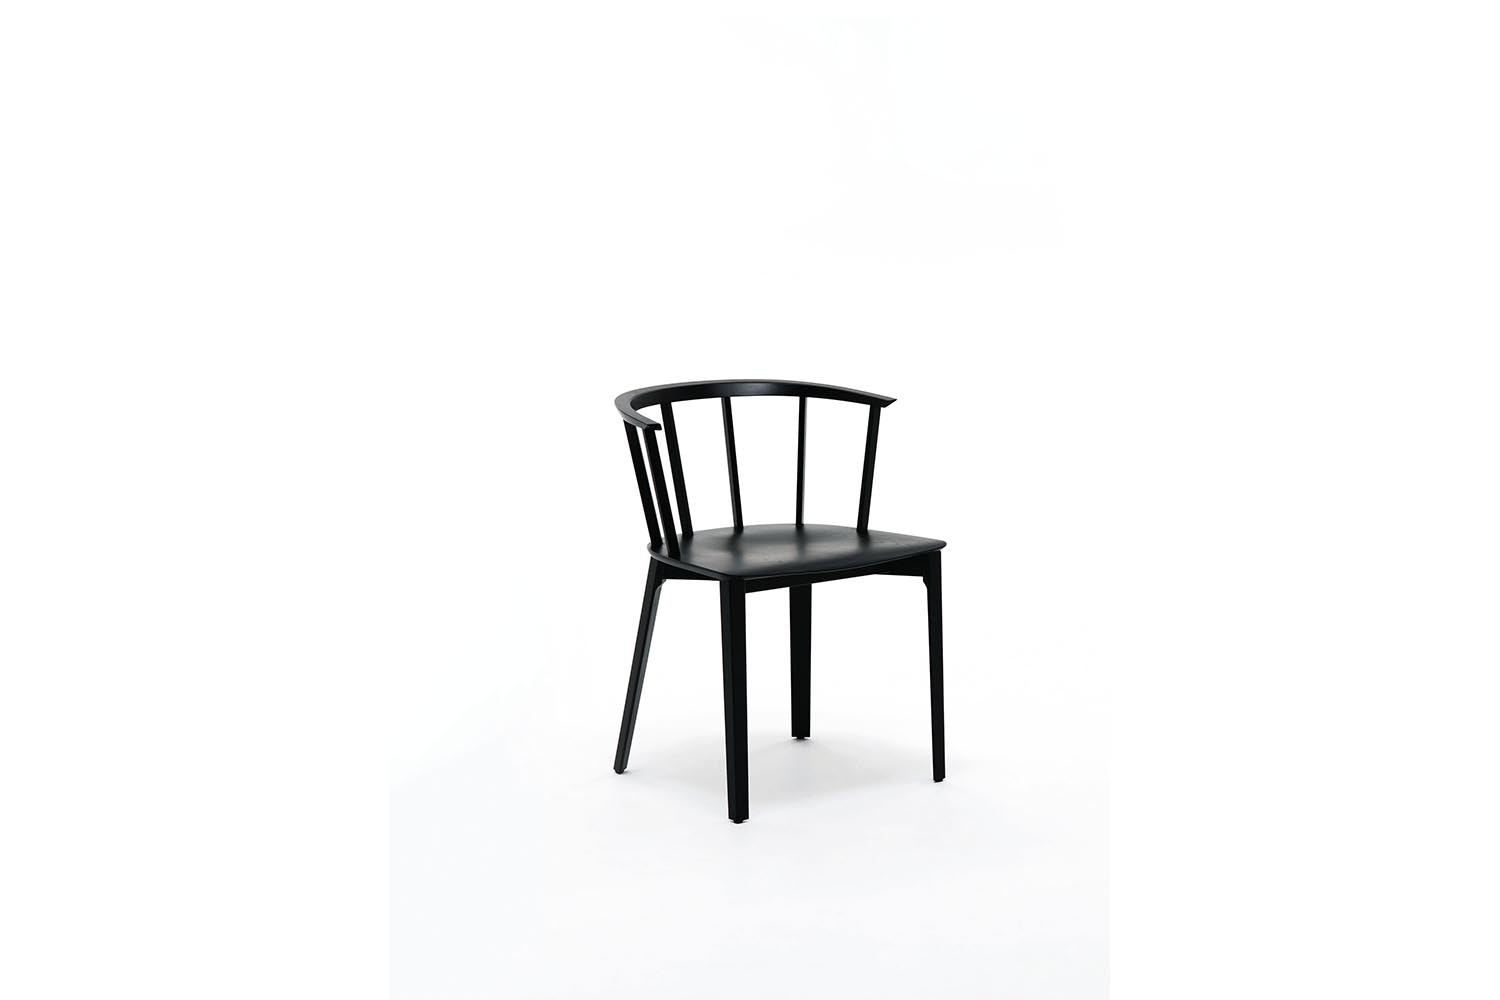 Deck Chair with Arms by Piero Lissoni for Glas Italia